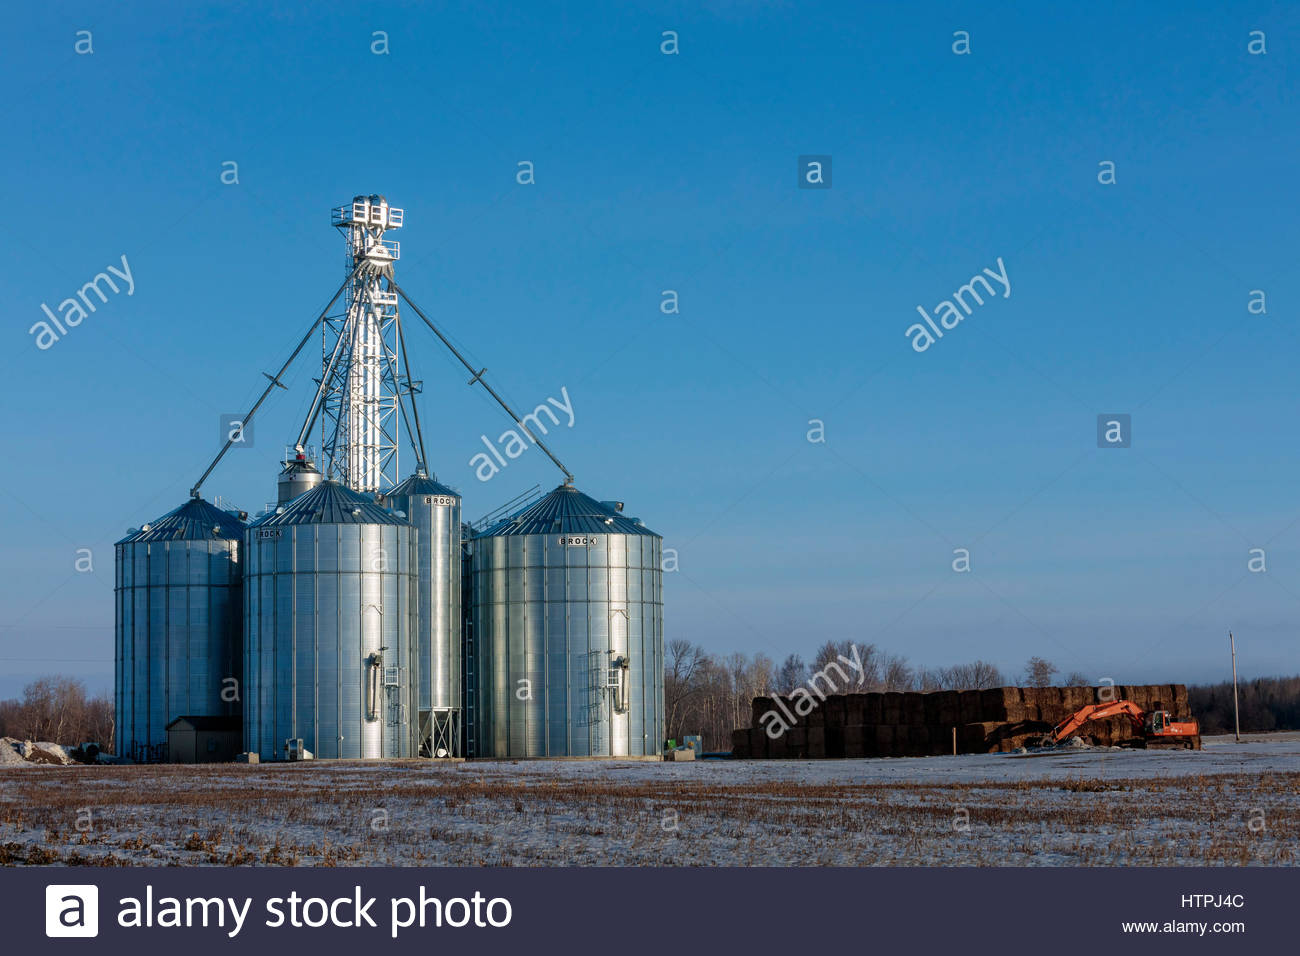 Near Port Perry Ontario Canada steel grain silos for storing bulk agriculture materials such as grain. - Stock Image